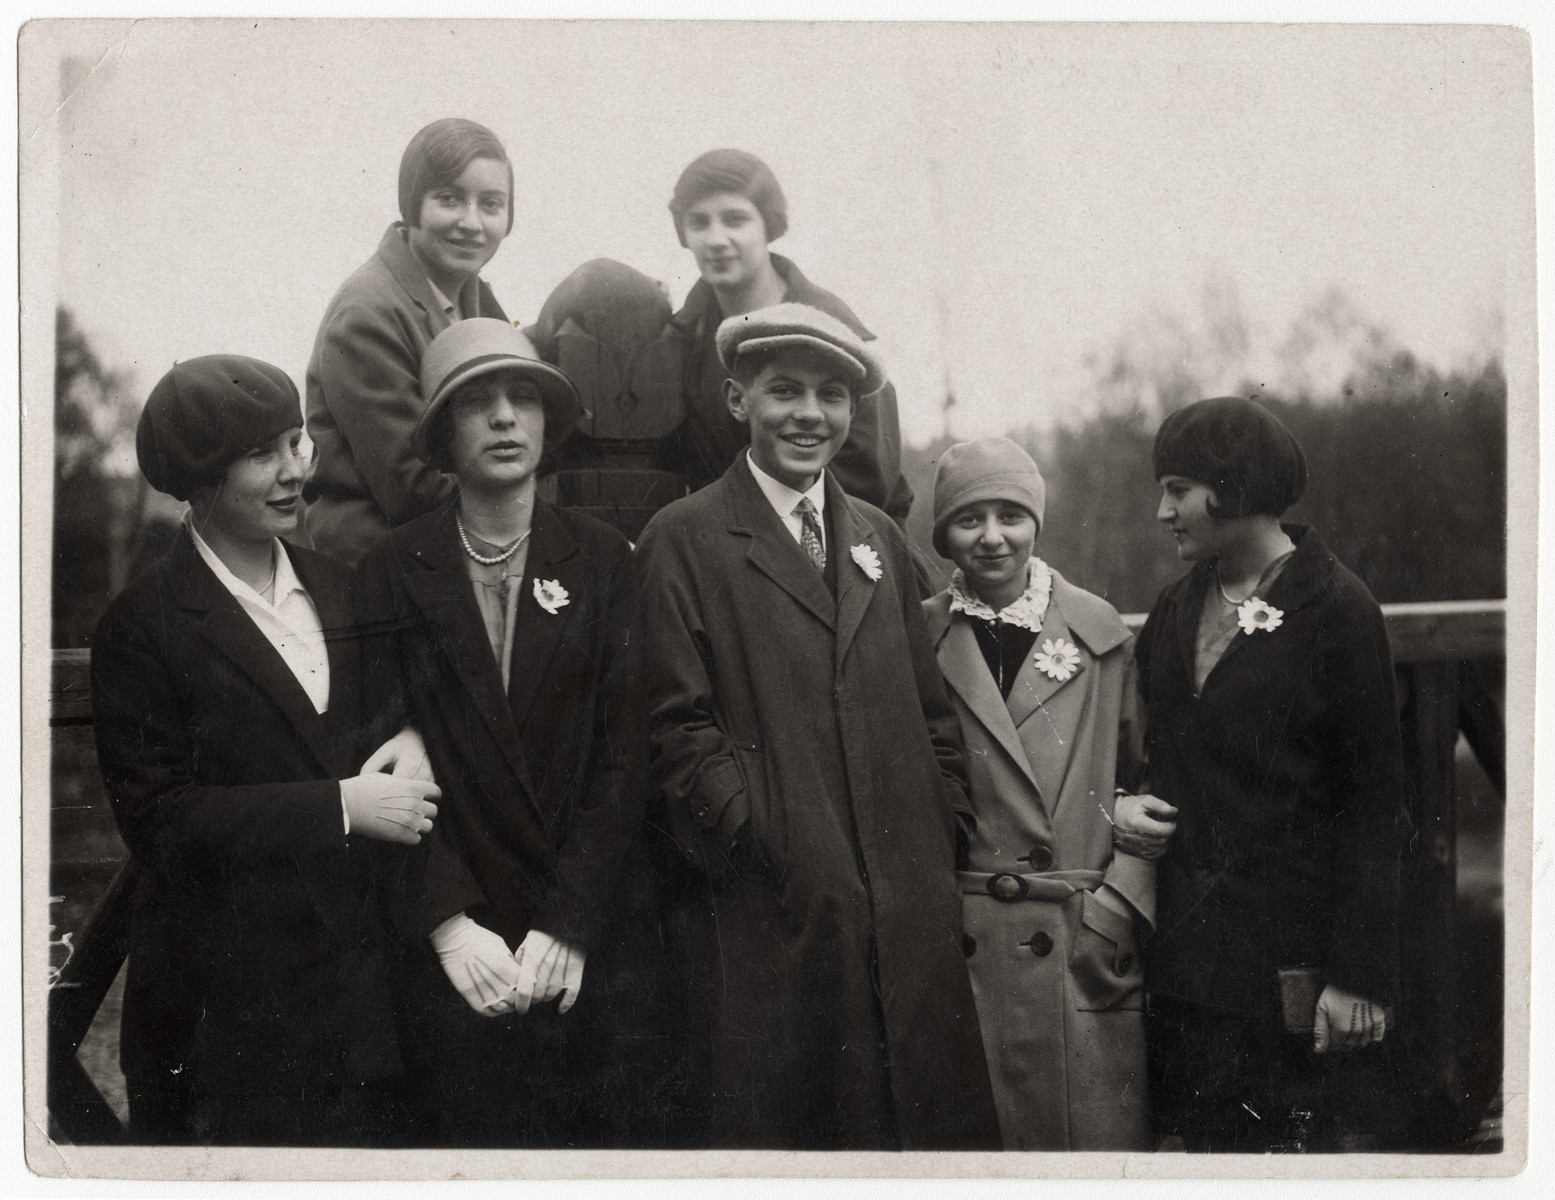 Group portrait of Jewish and non-Jewish young adults in Riga, Latvia.  Among those pictured are Sofia Javorkovsky (mother of the donor), first row, second from right and her best friend, Elena Berzin (later Francman) in front left.  Elena Francman helped the Javorkovsky family by bringing food into the ghetto and keeping their valuables safe and returning them after the war.